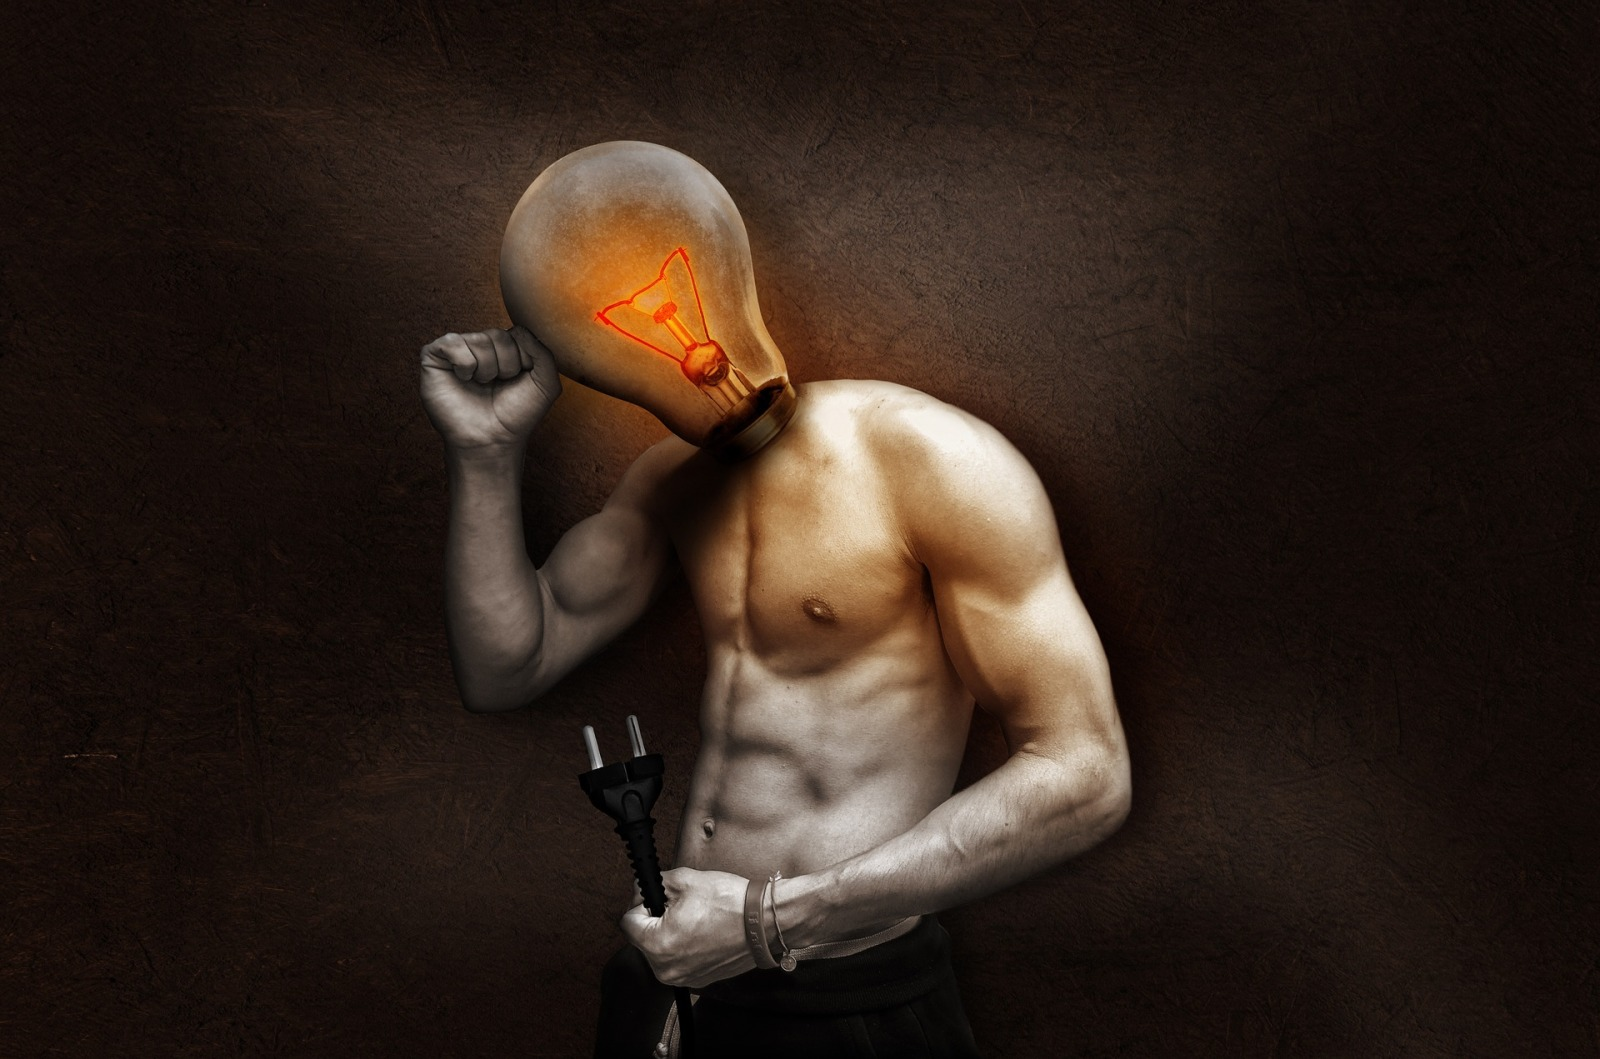 Light bulb man